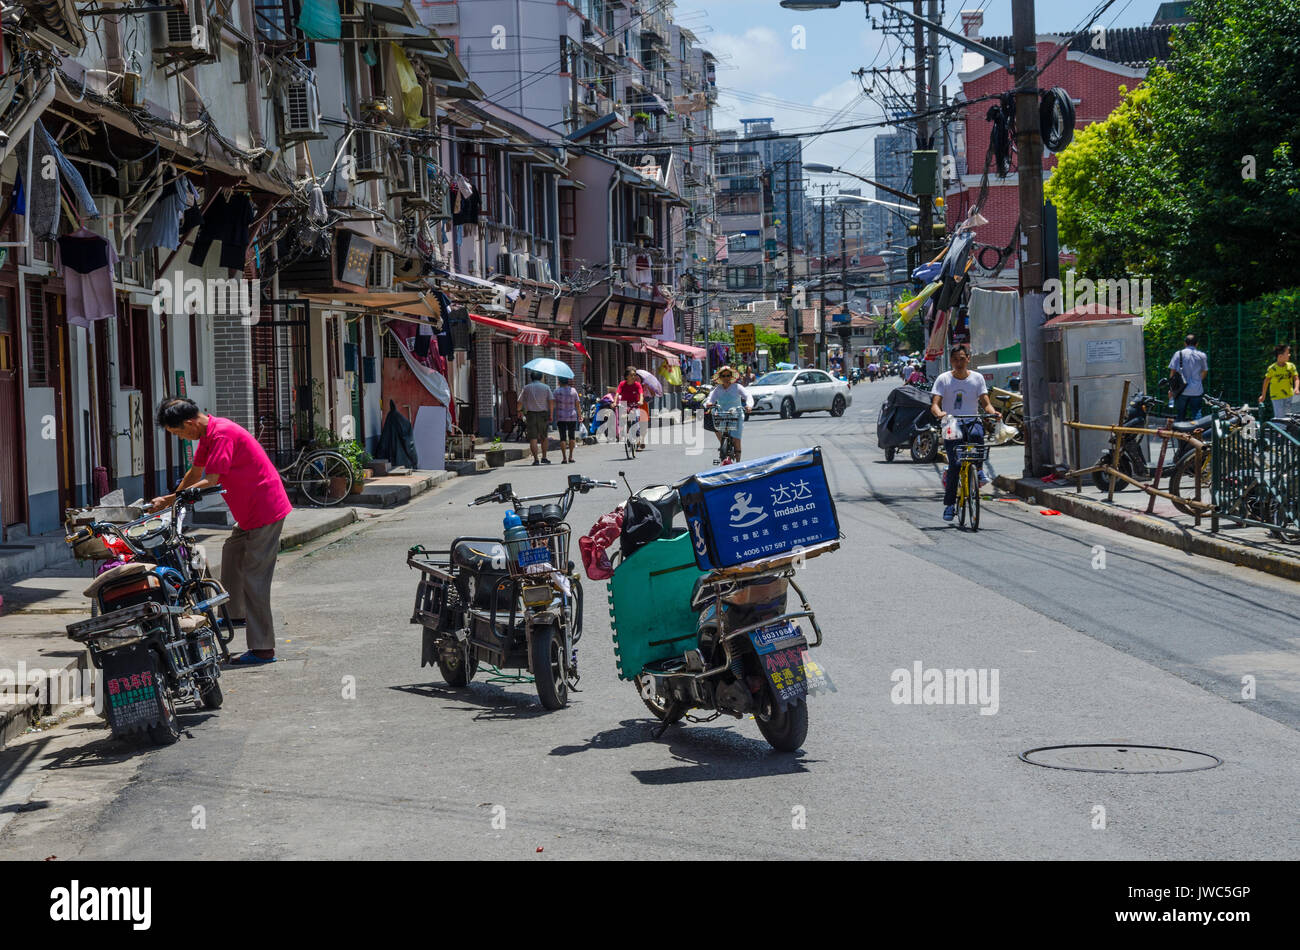 a-couple-of-electric-scooters-are-parked-in-the-middle-of-the-road-JWC5GP.jpg